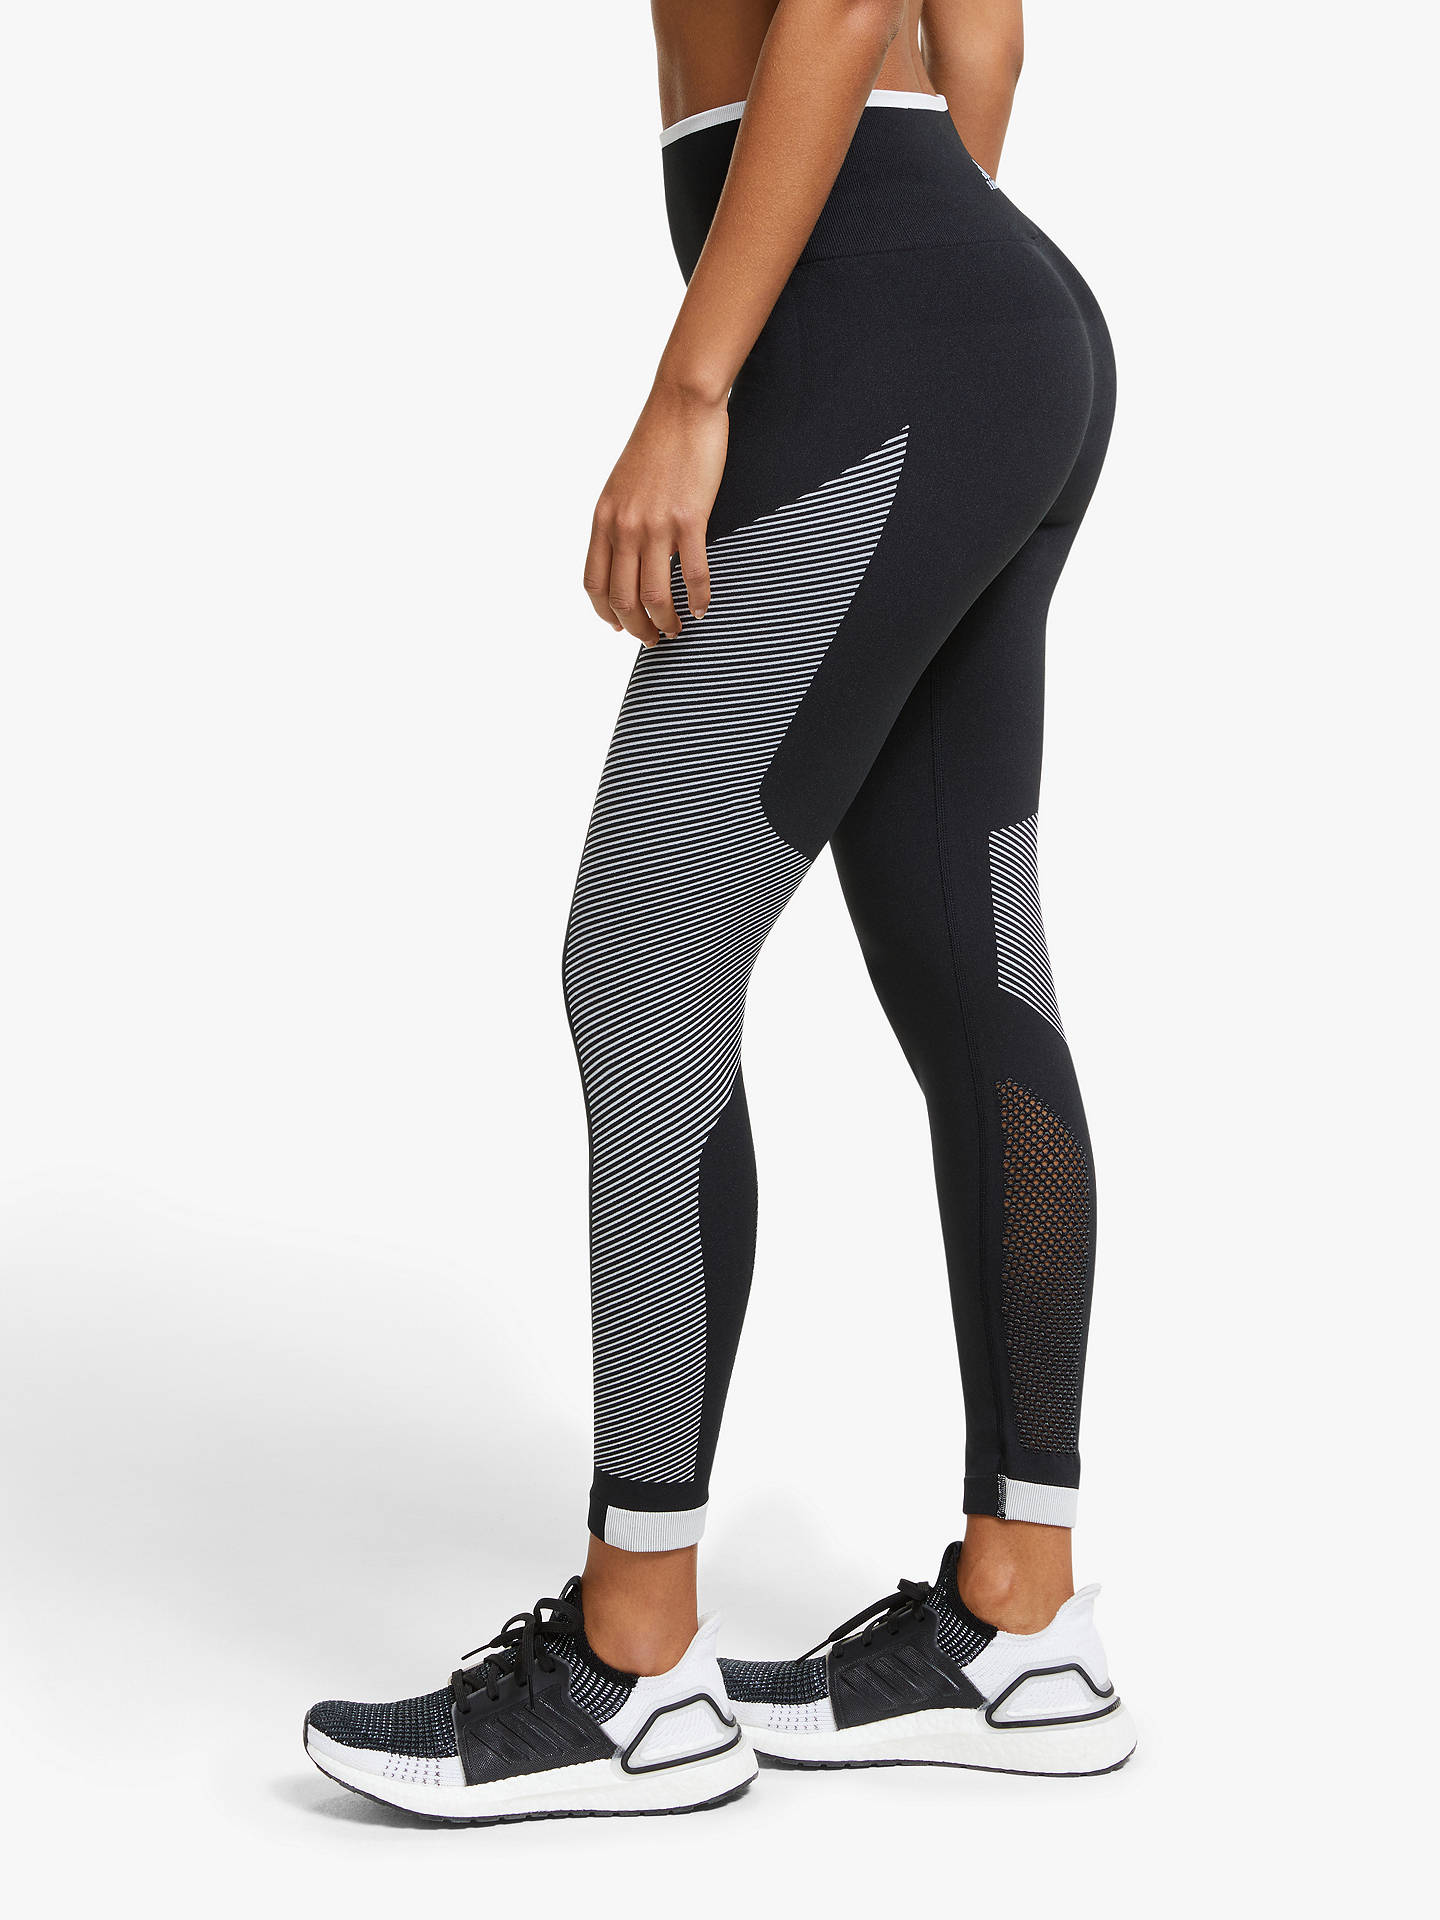 84c07f87944b8a ... Buy adidas Believe This Primeknit FLW Training Tights, Black/White, XS  Online at